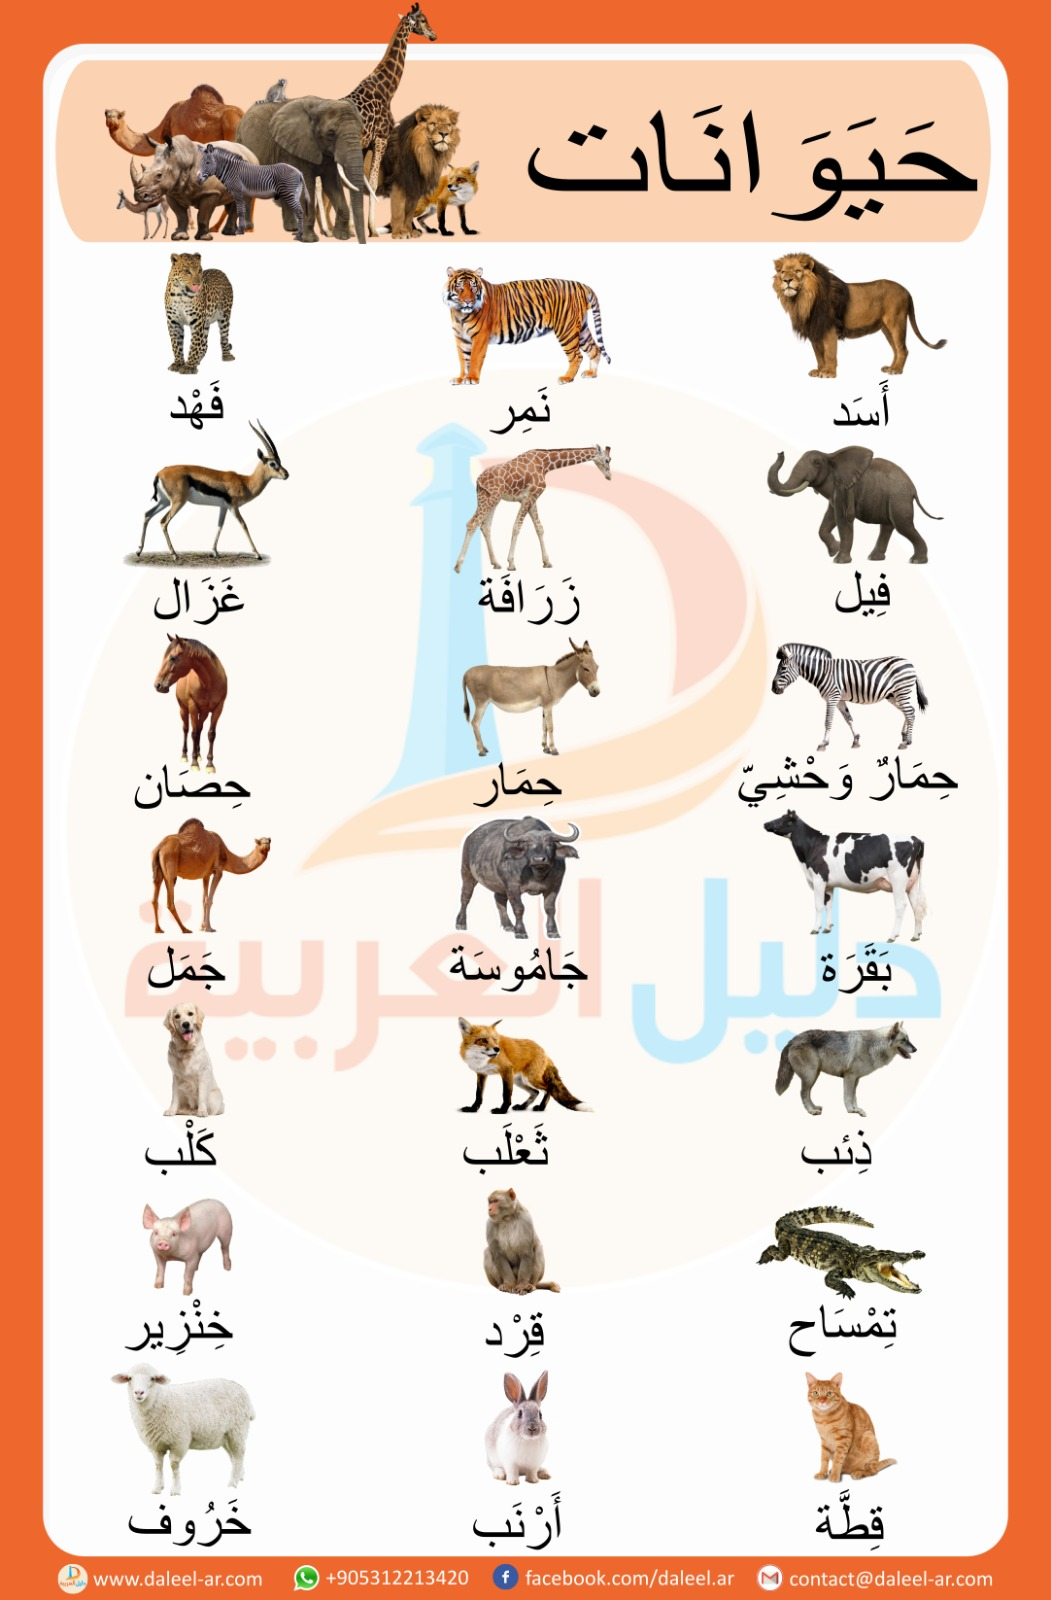 Animals in Arabic - الحَيَوَنَات بِاللُّغَةِ العَرَبِيَّةِ